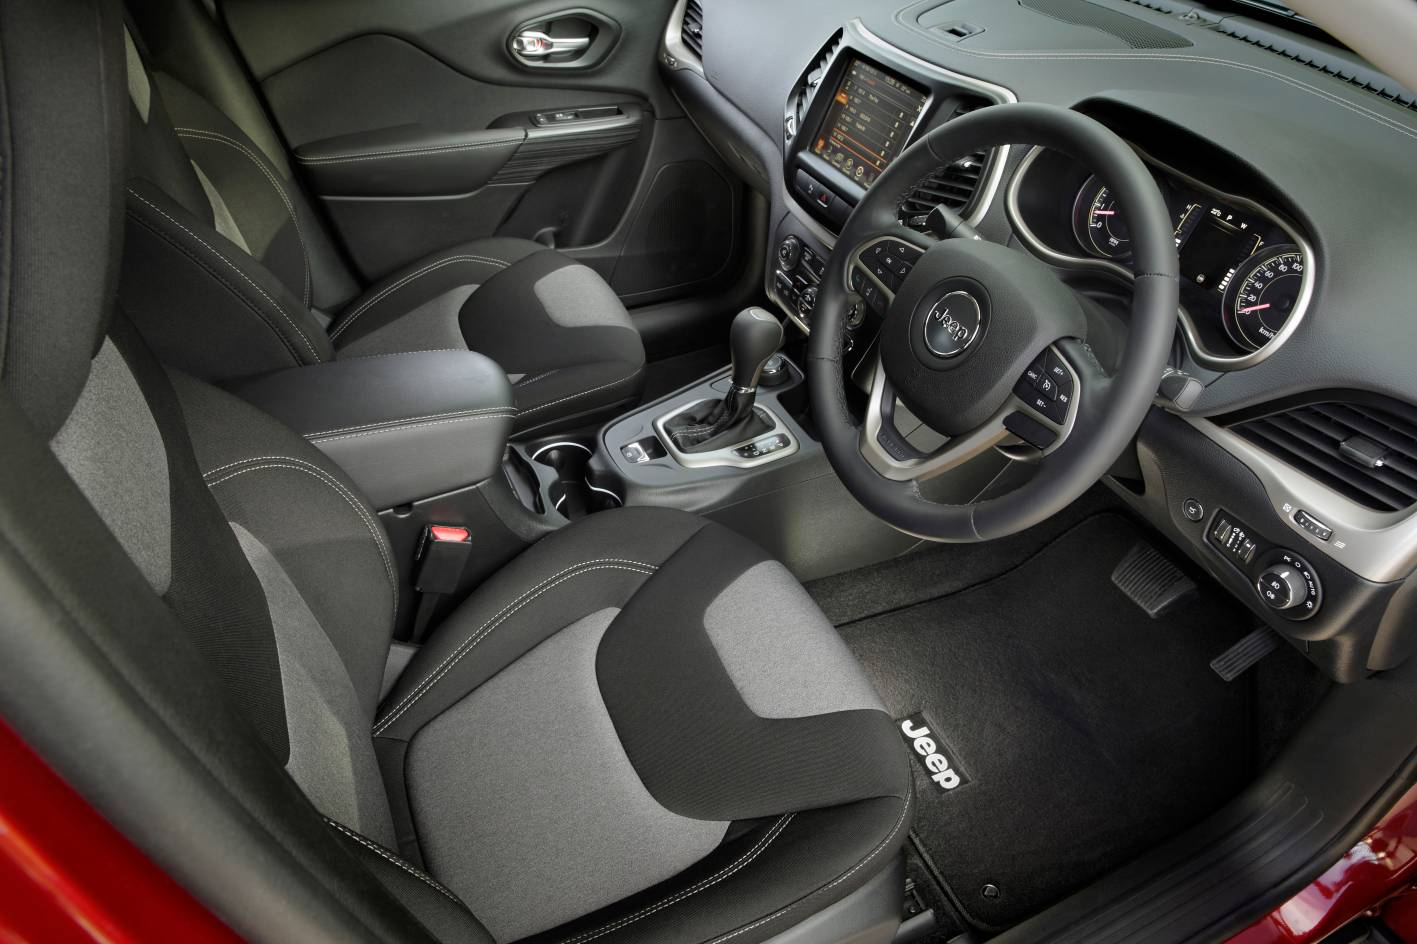 2014 jeep cherokee longitude interior. Cars Review. Best American Auto & Cars Review